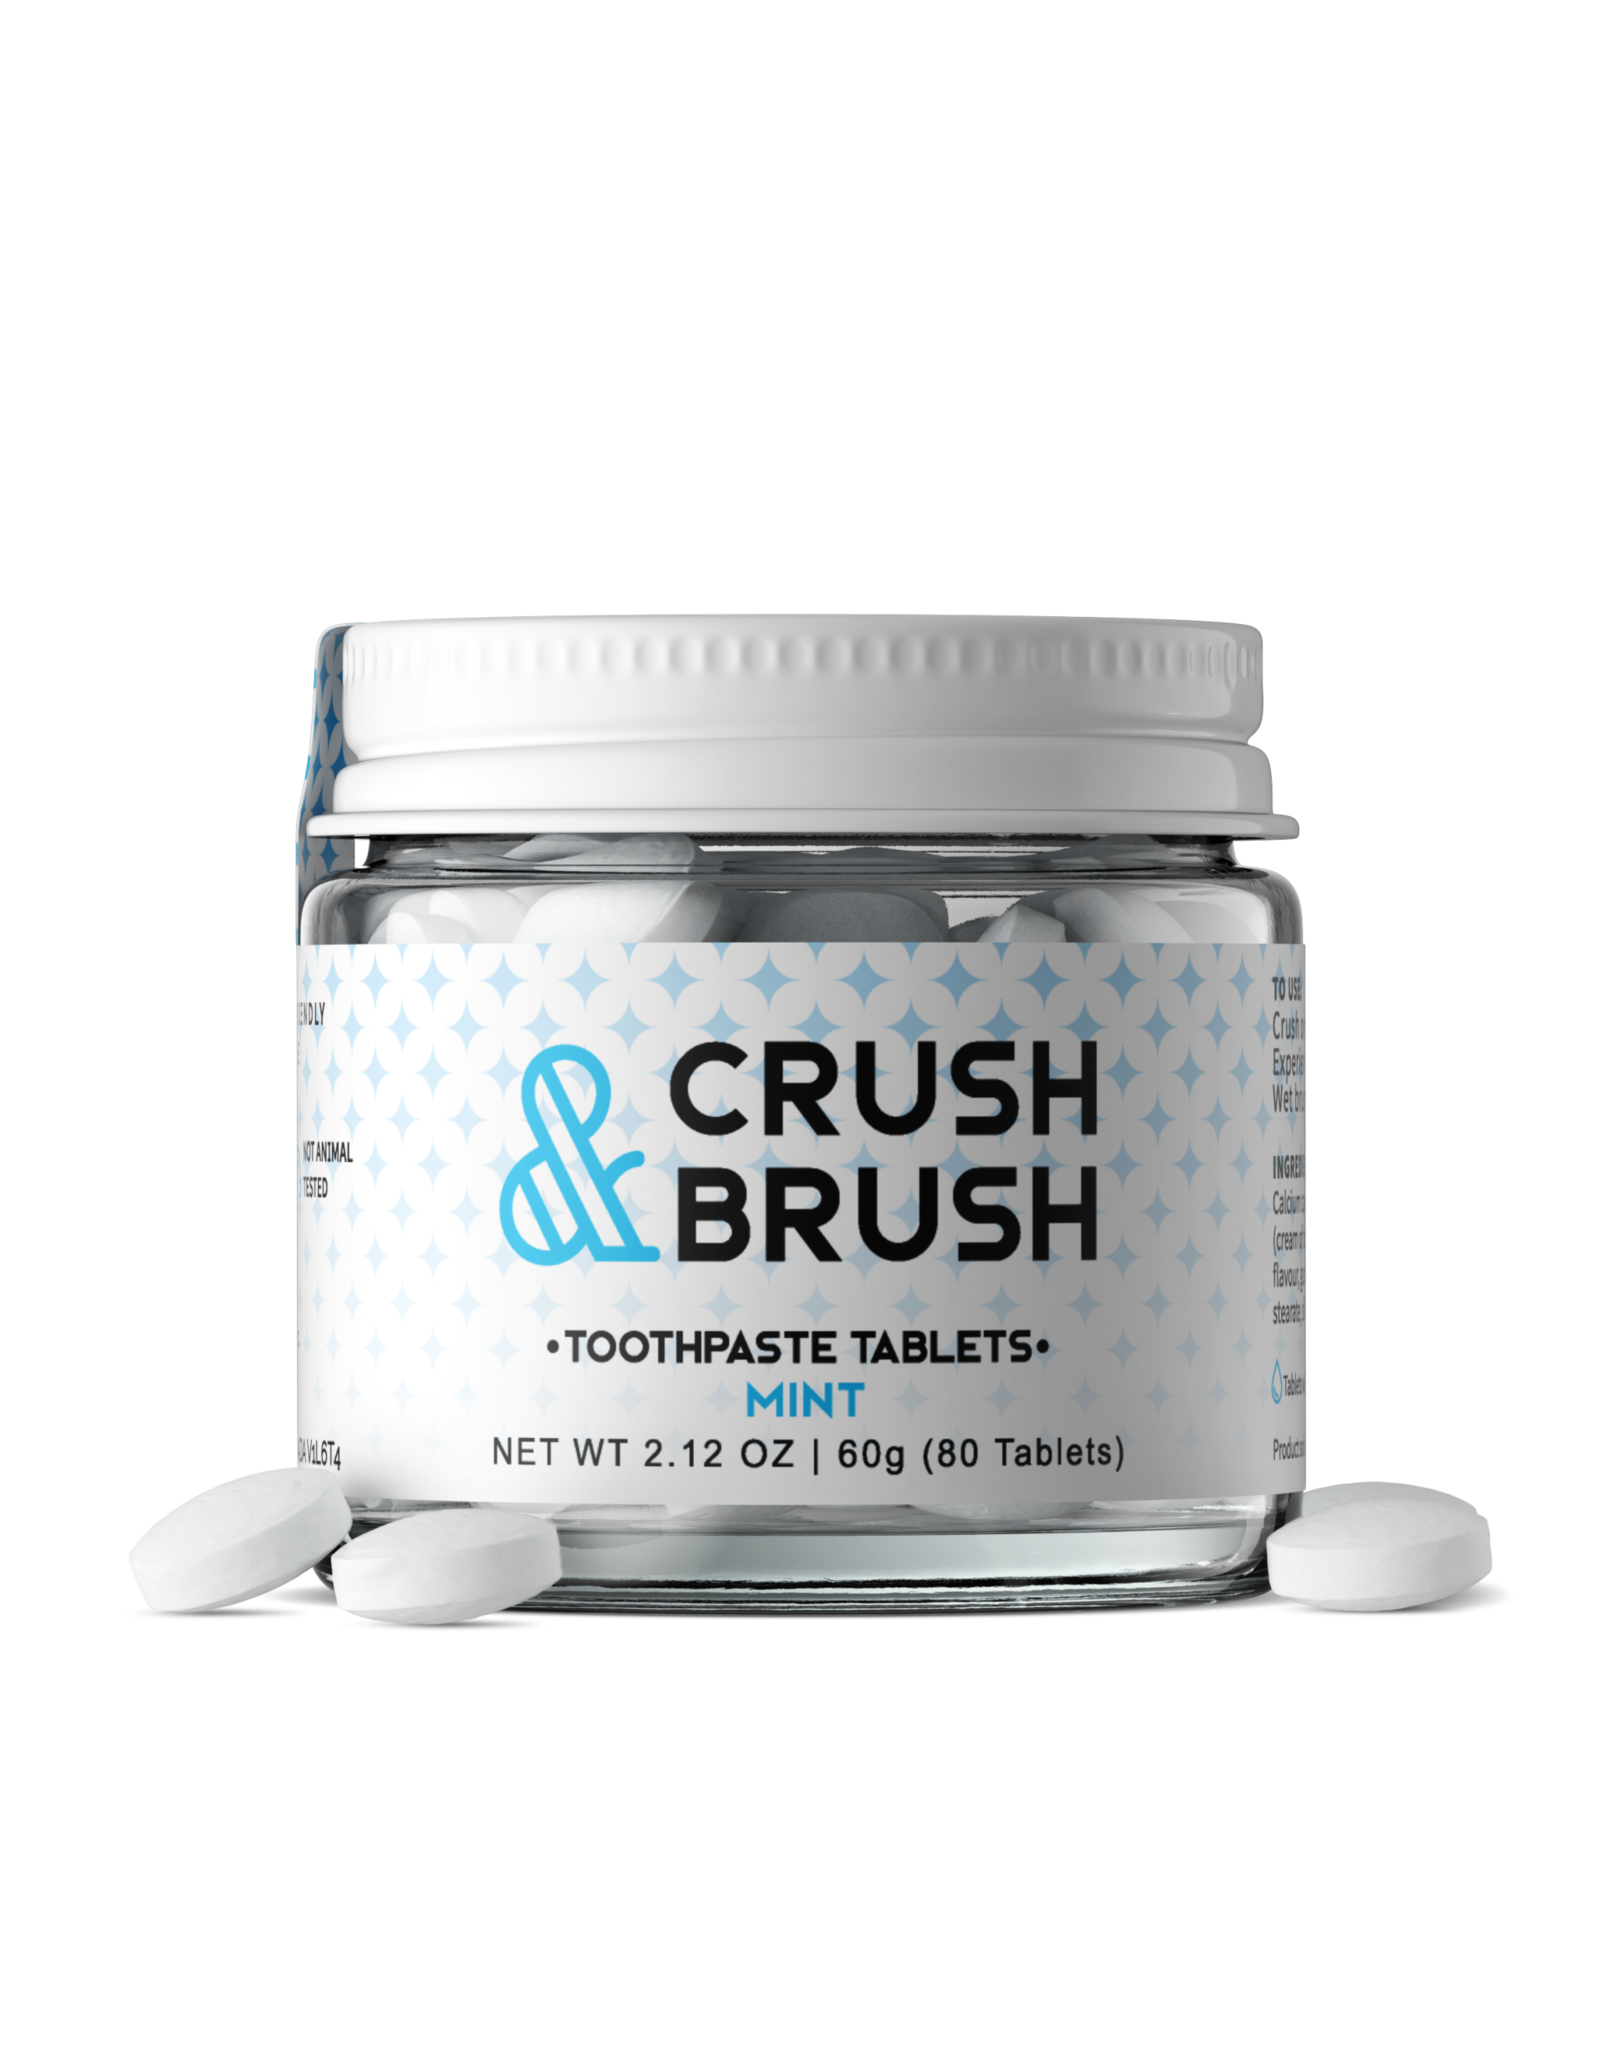 Nelson Naturals Crush & Brush Toothpaste Tablets Mint